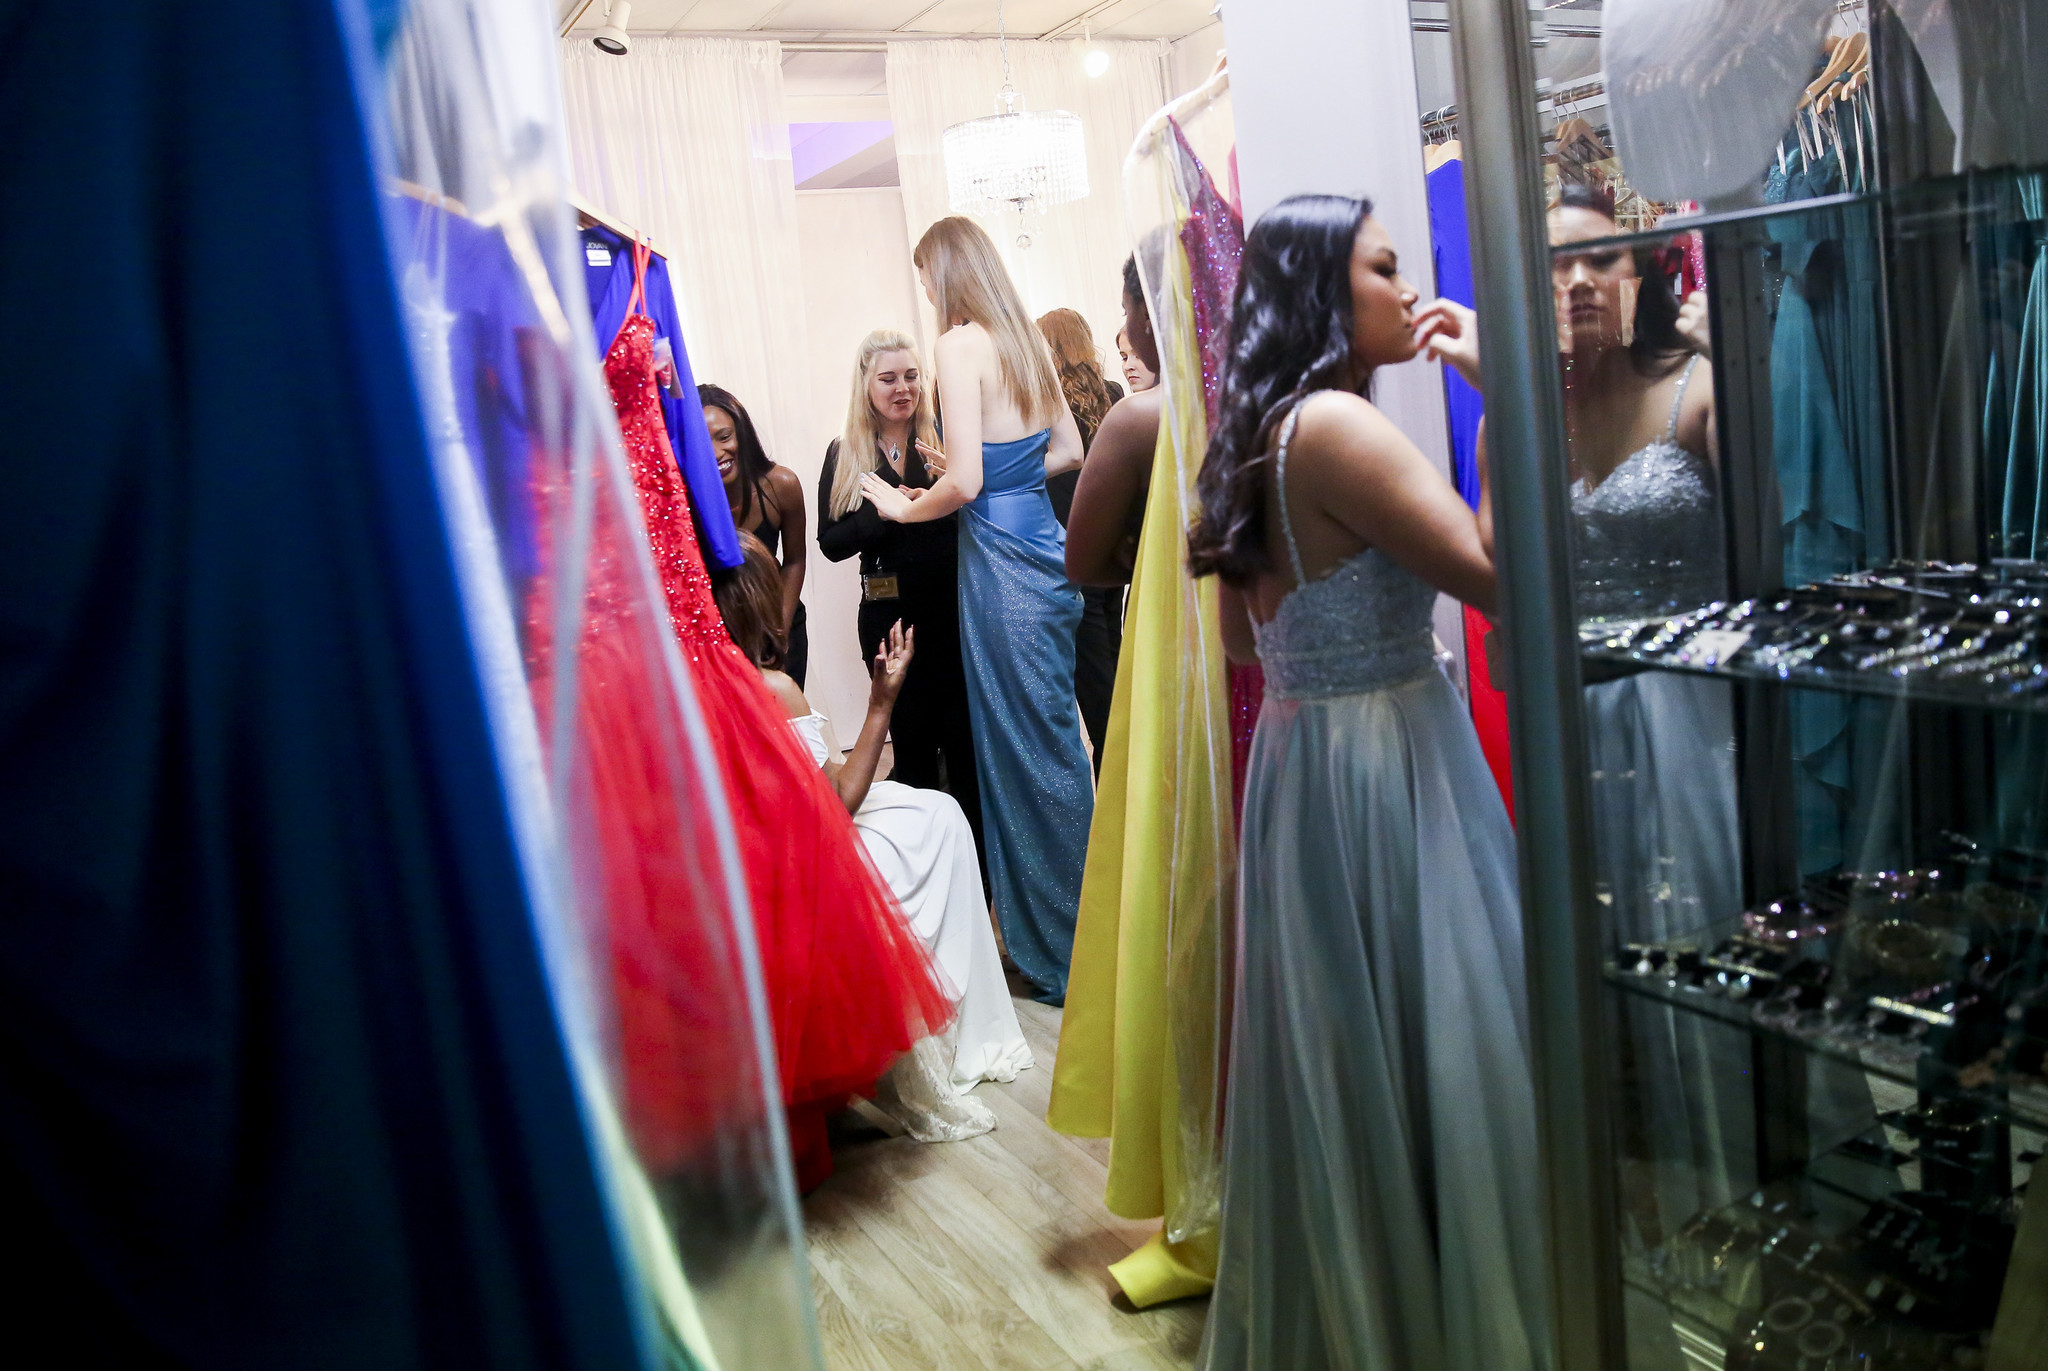 Teens Win Virginia Beach Dress Design Competition Will Have Dresses Made And Sold The Virginian Pilot The Virginian Pilot